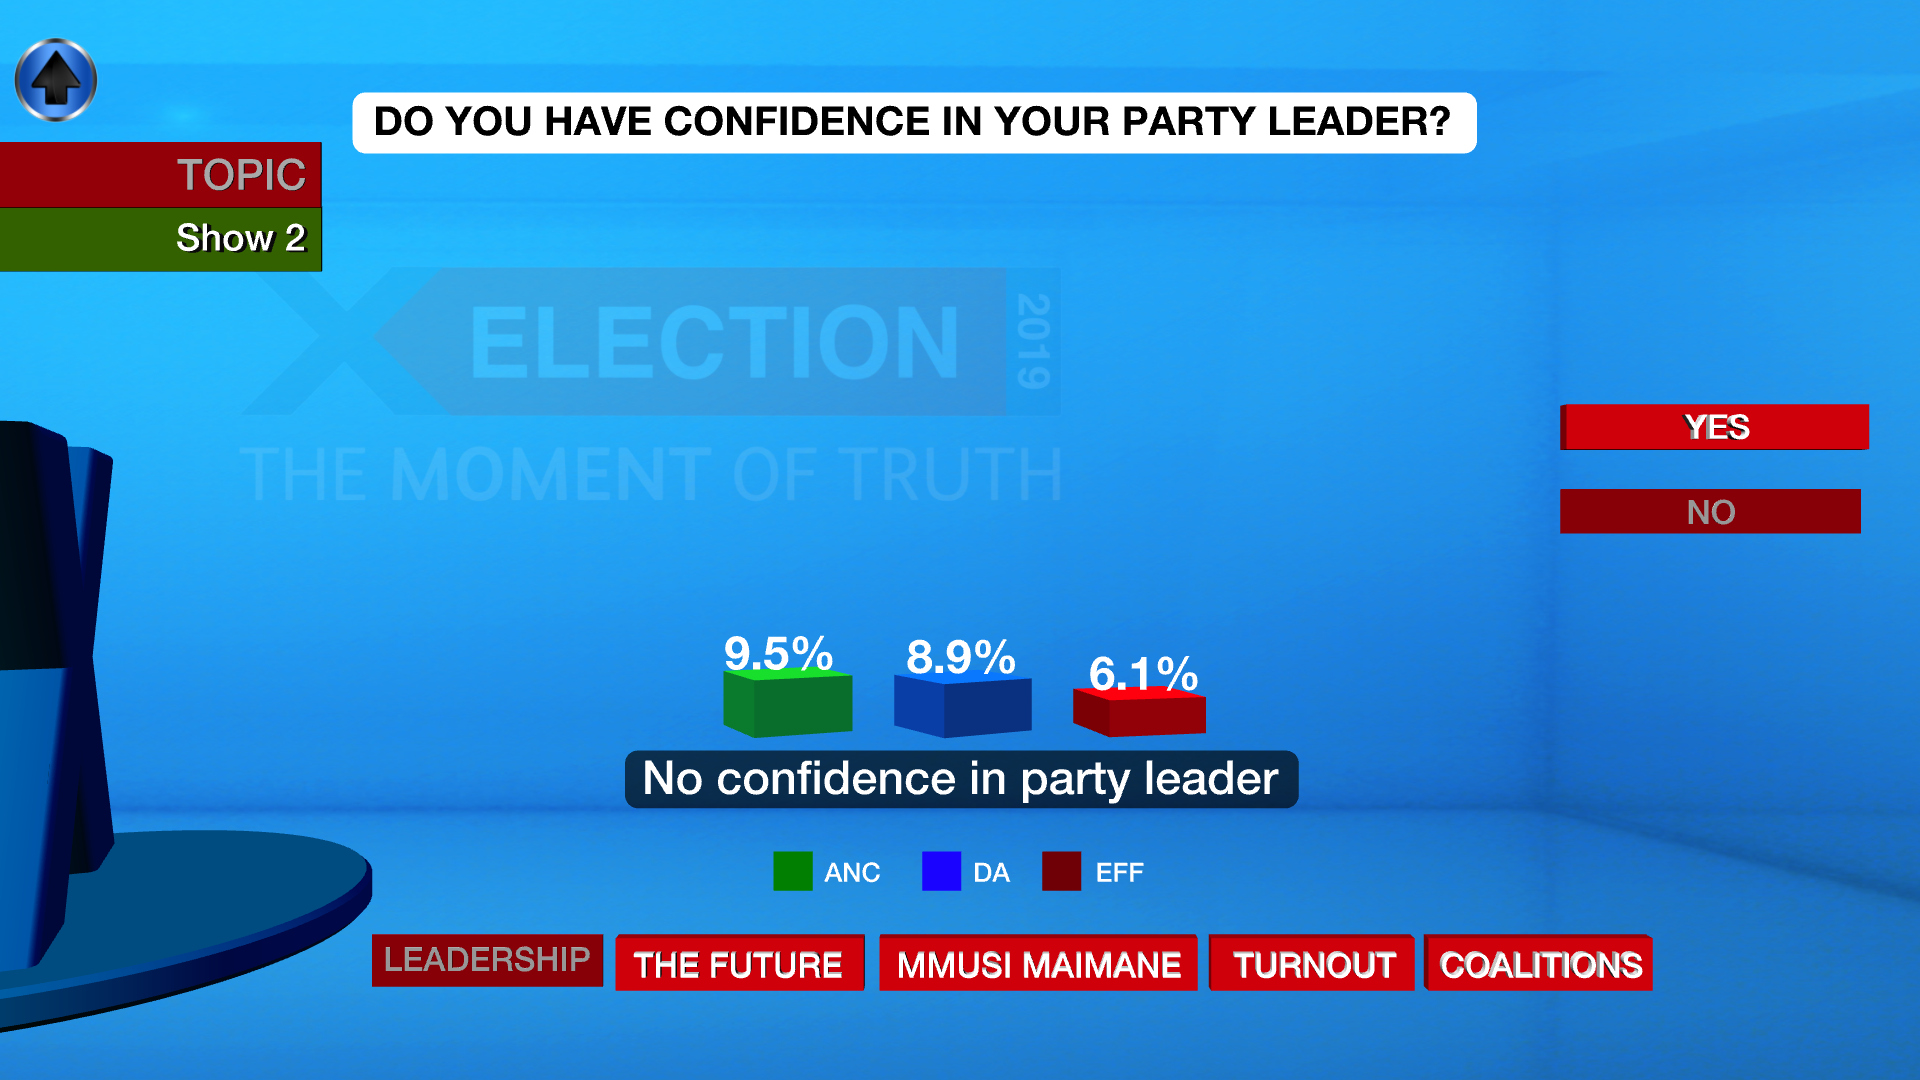 The level of confidence voters do not have in the leaders of their respective parties.